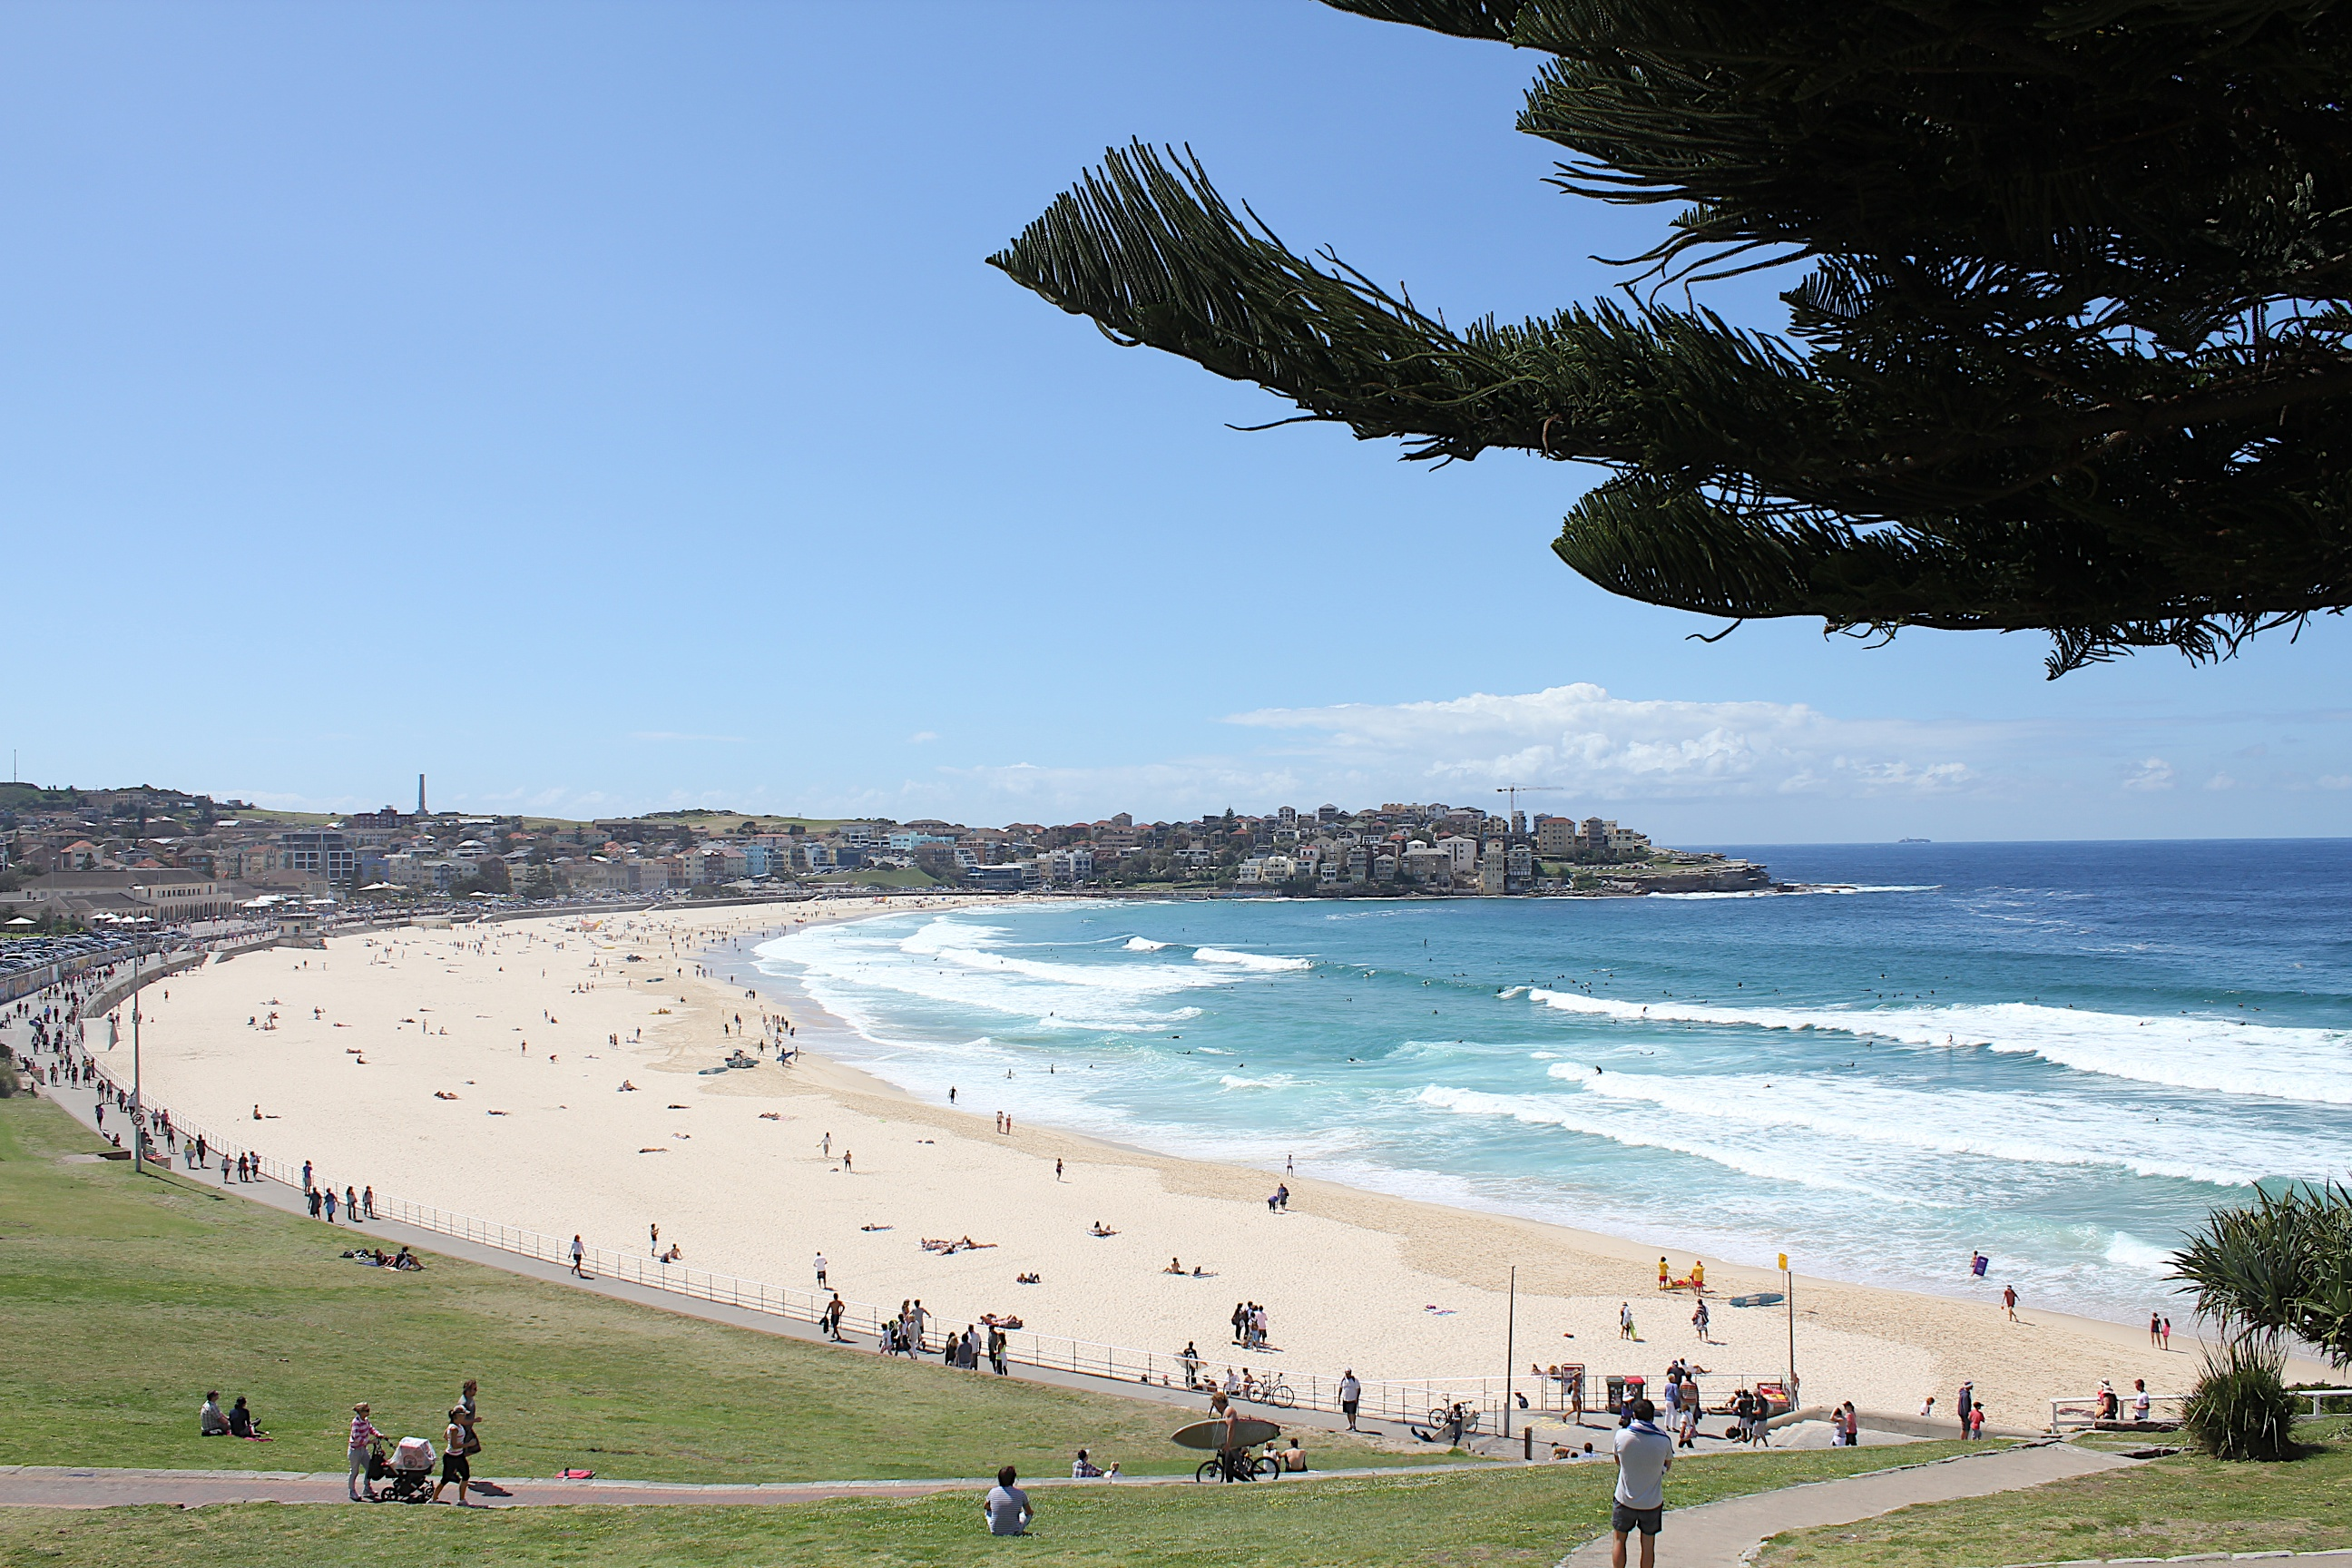 Visit Bondi Beach - Australia's most famous surf beach